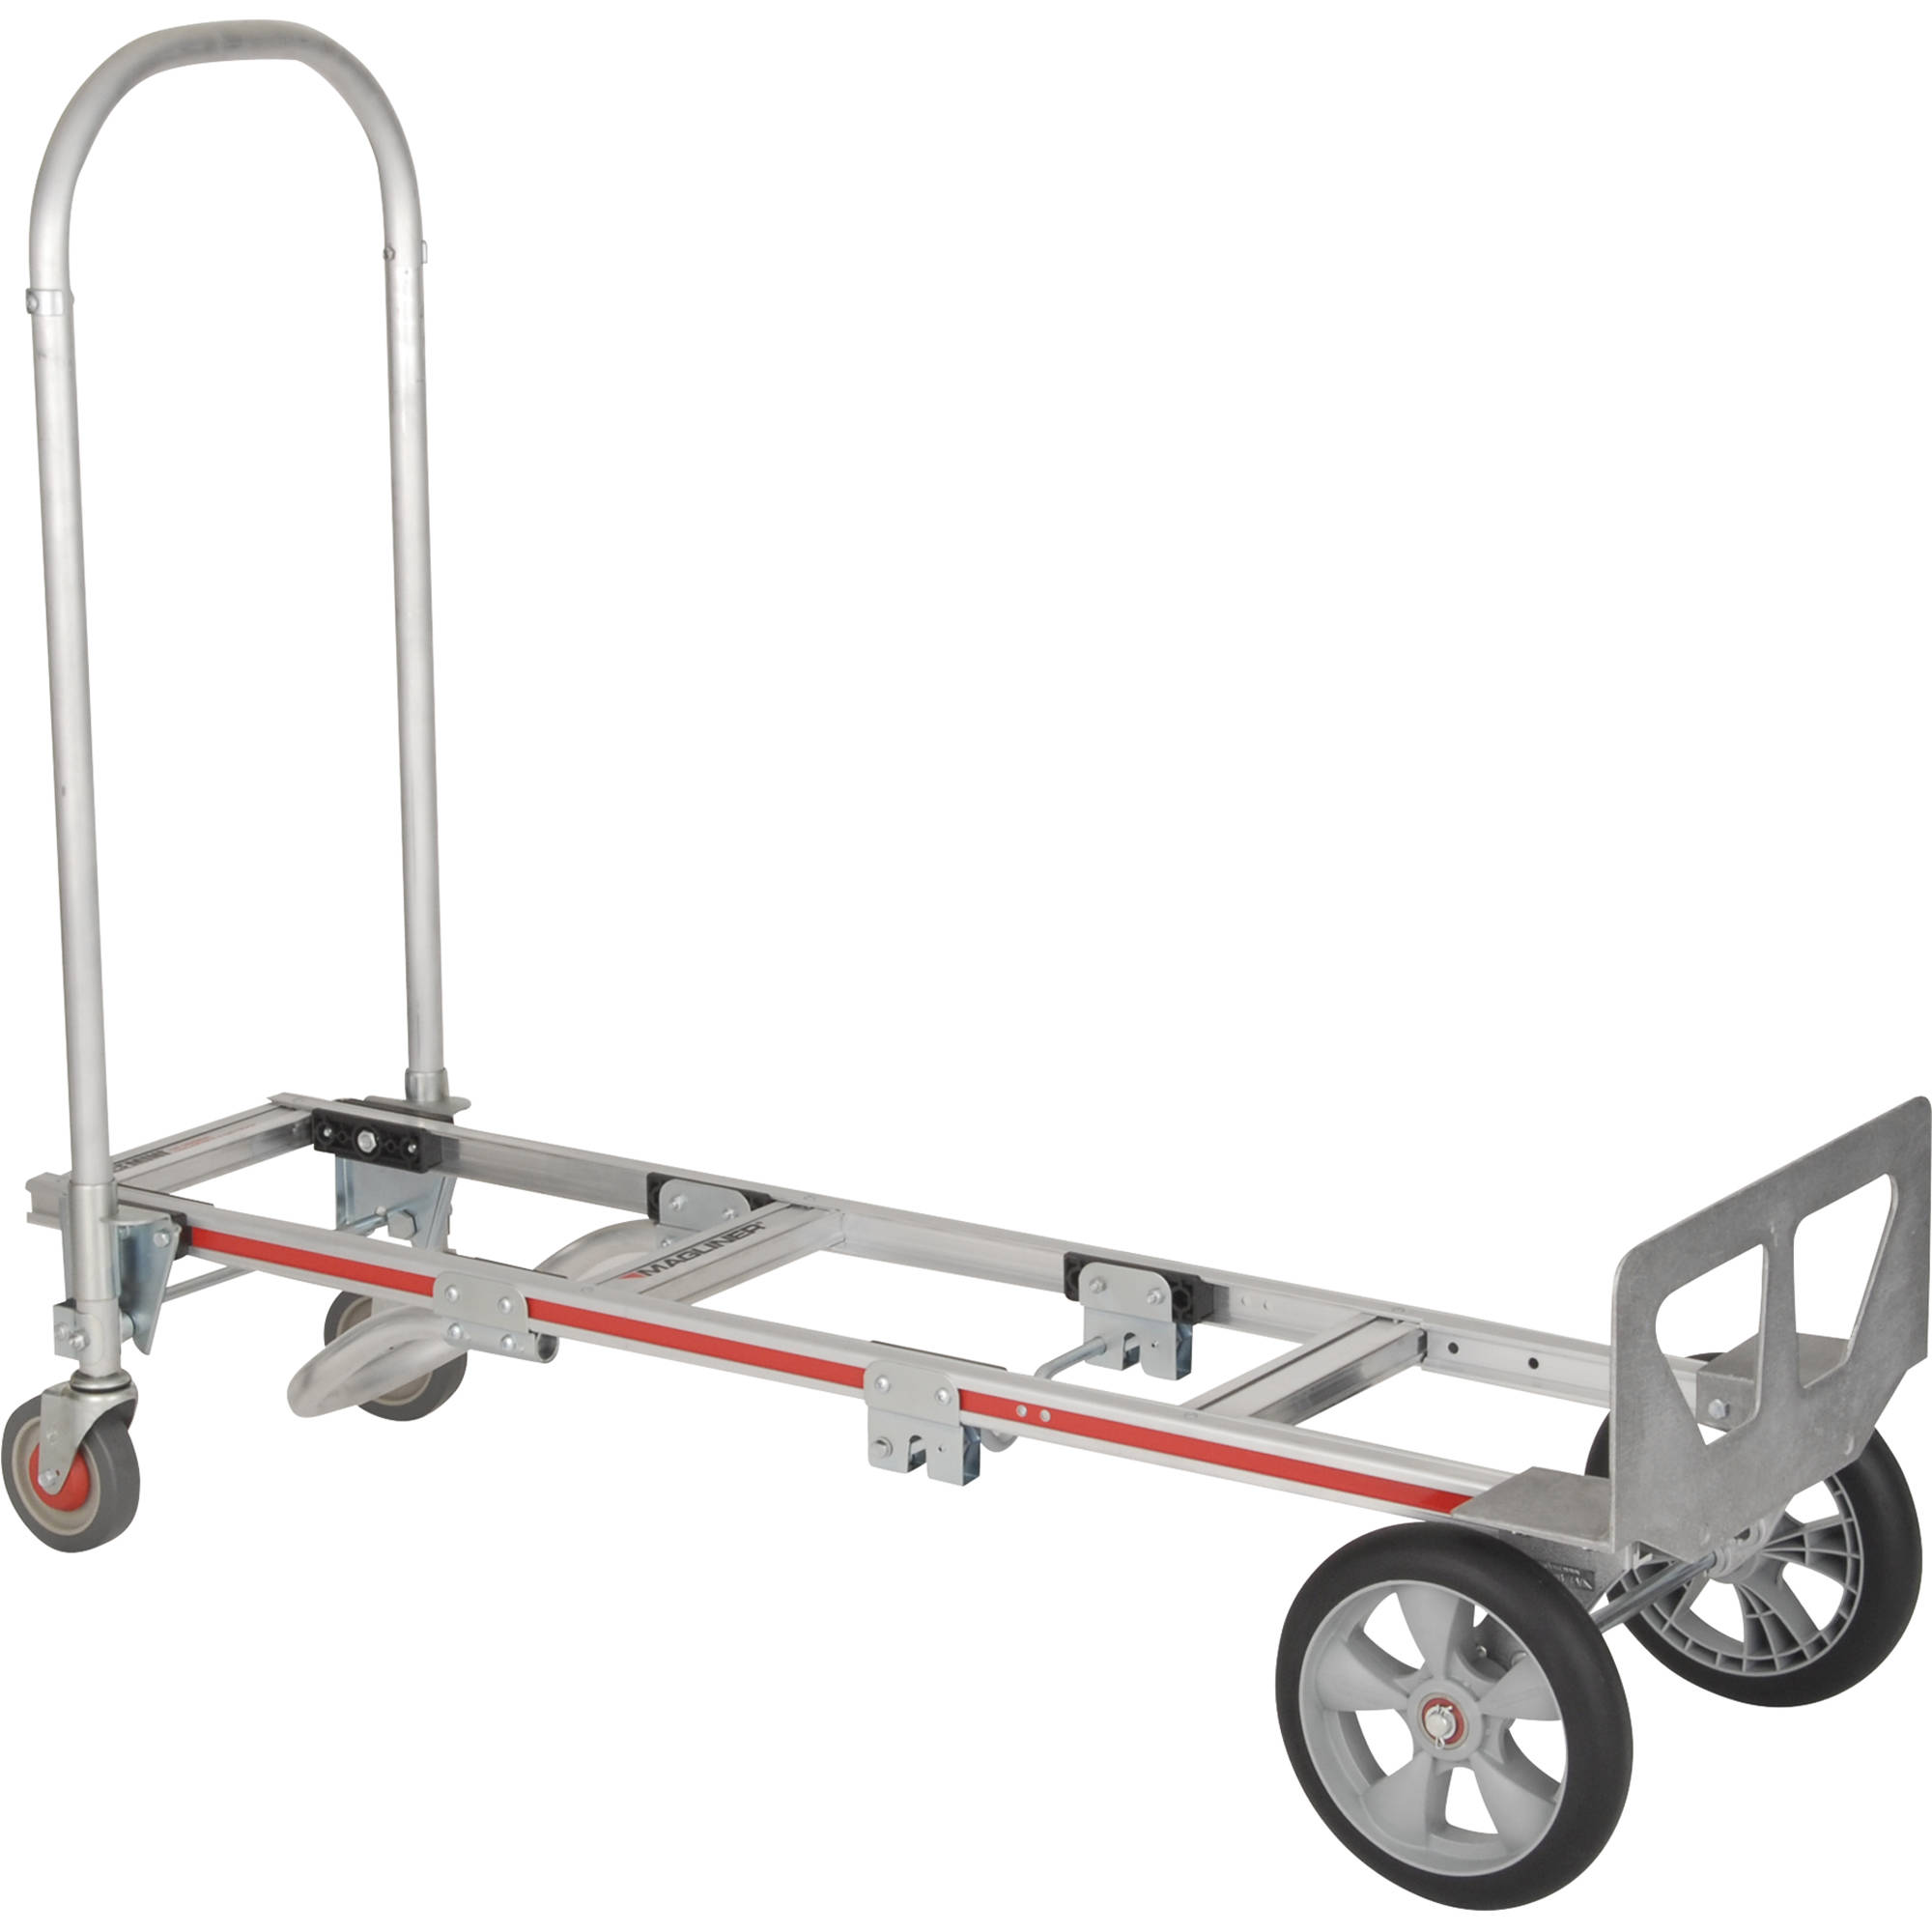 Magliner Gemini Sr Convertible Hand Truck With 10 Interlocked Microcellular Foam Wheels